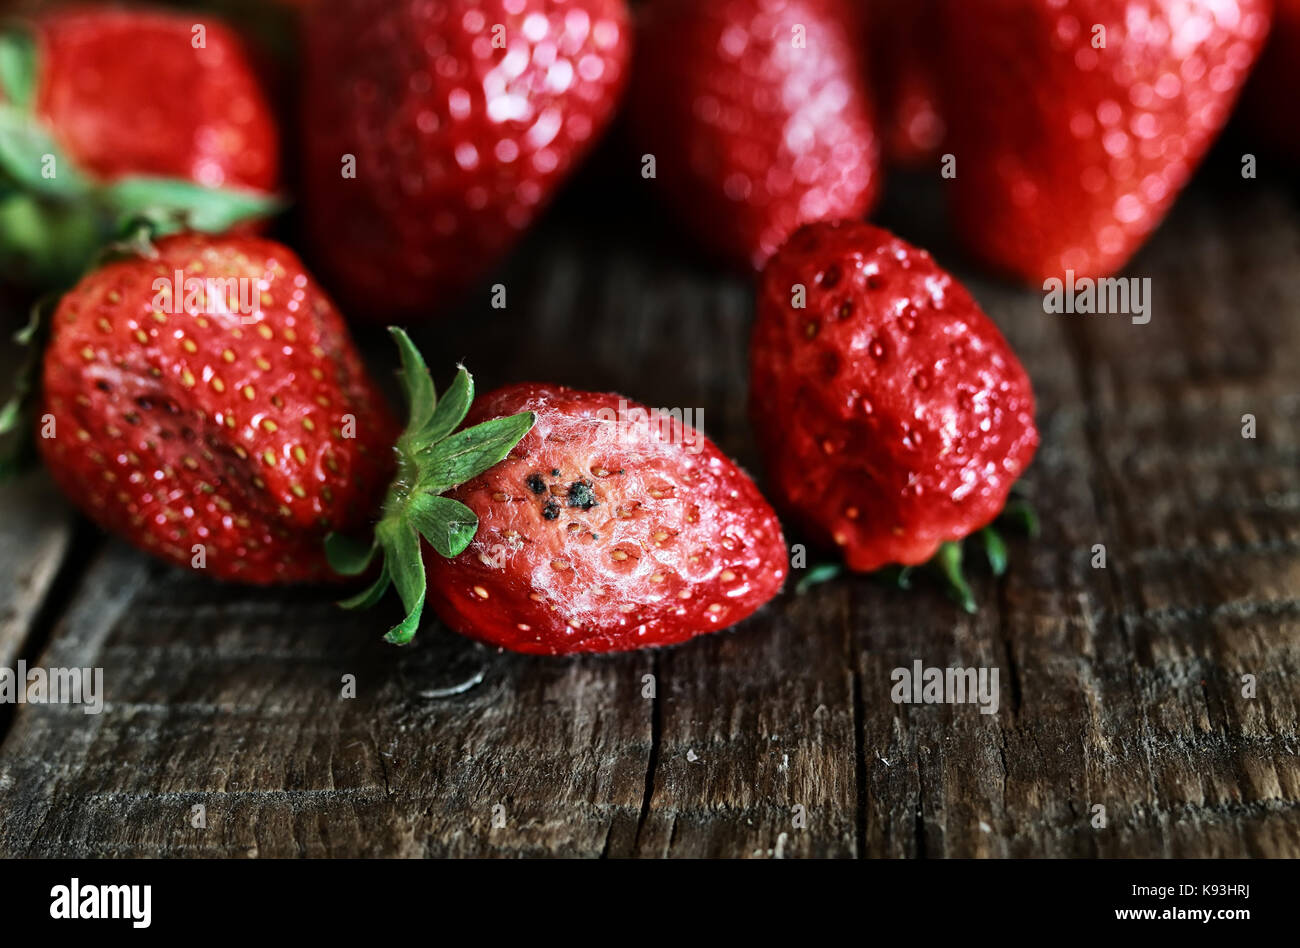 Rotten Strawberries Rotten Strawberries St...